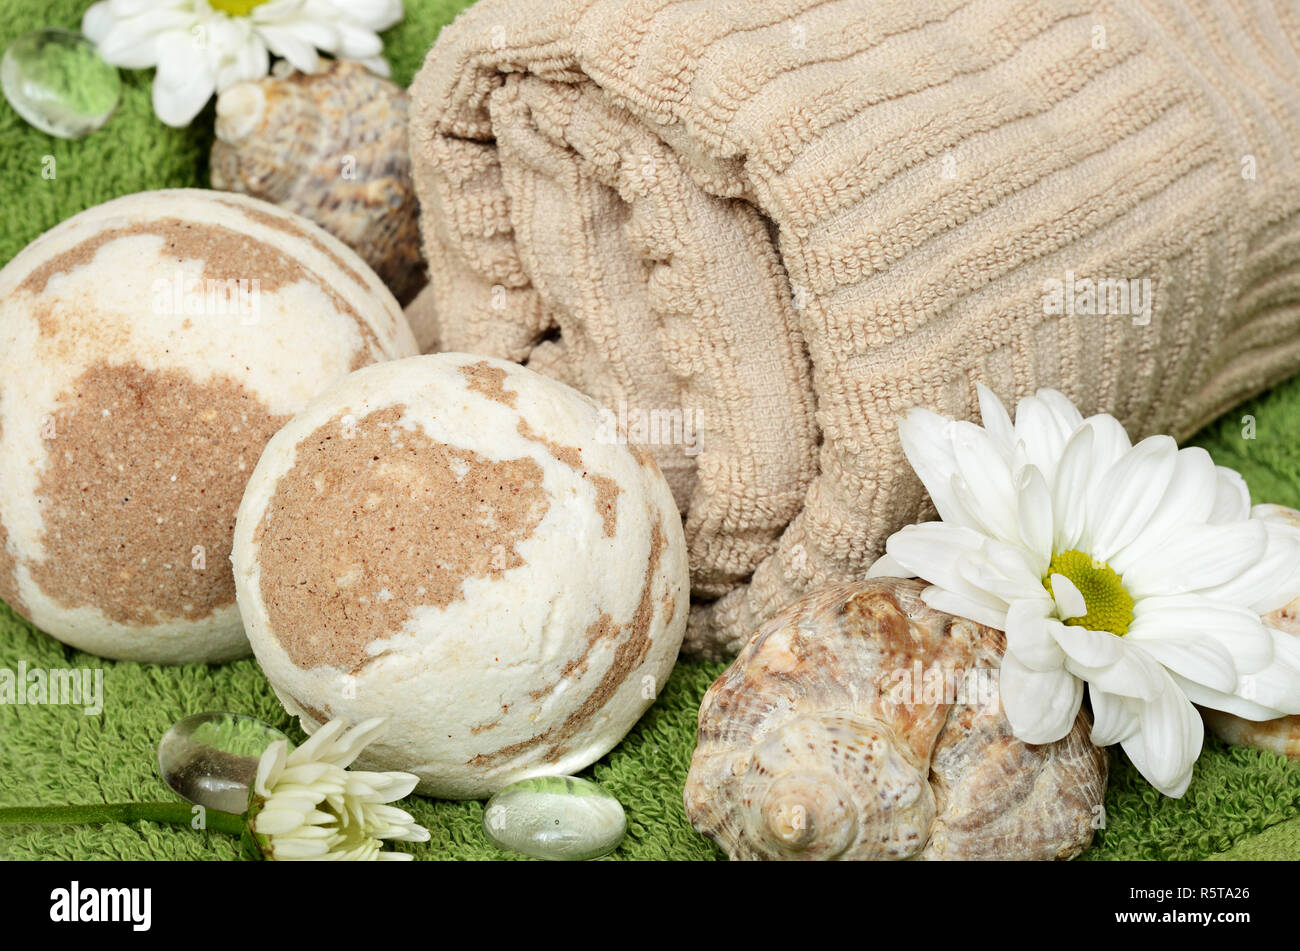 Towel and bath bomb for relaxation - Stock Image